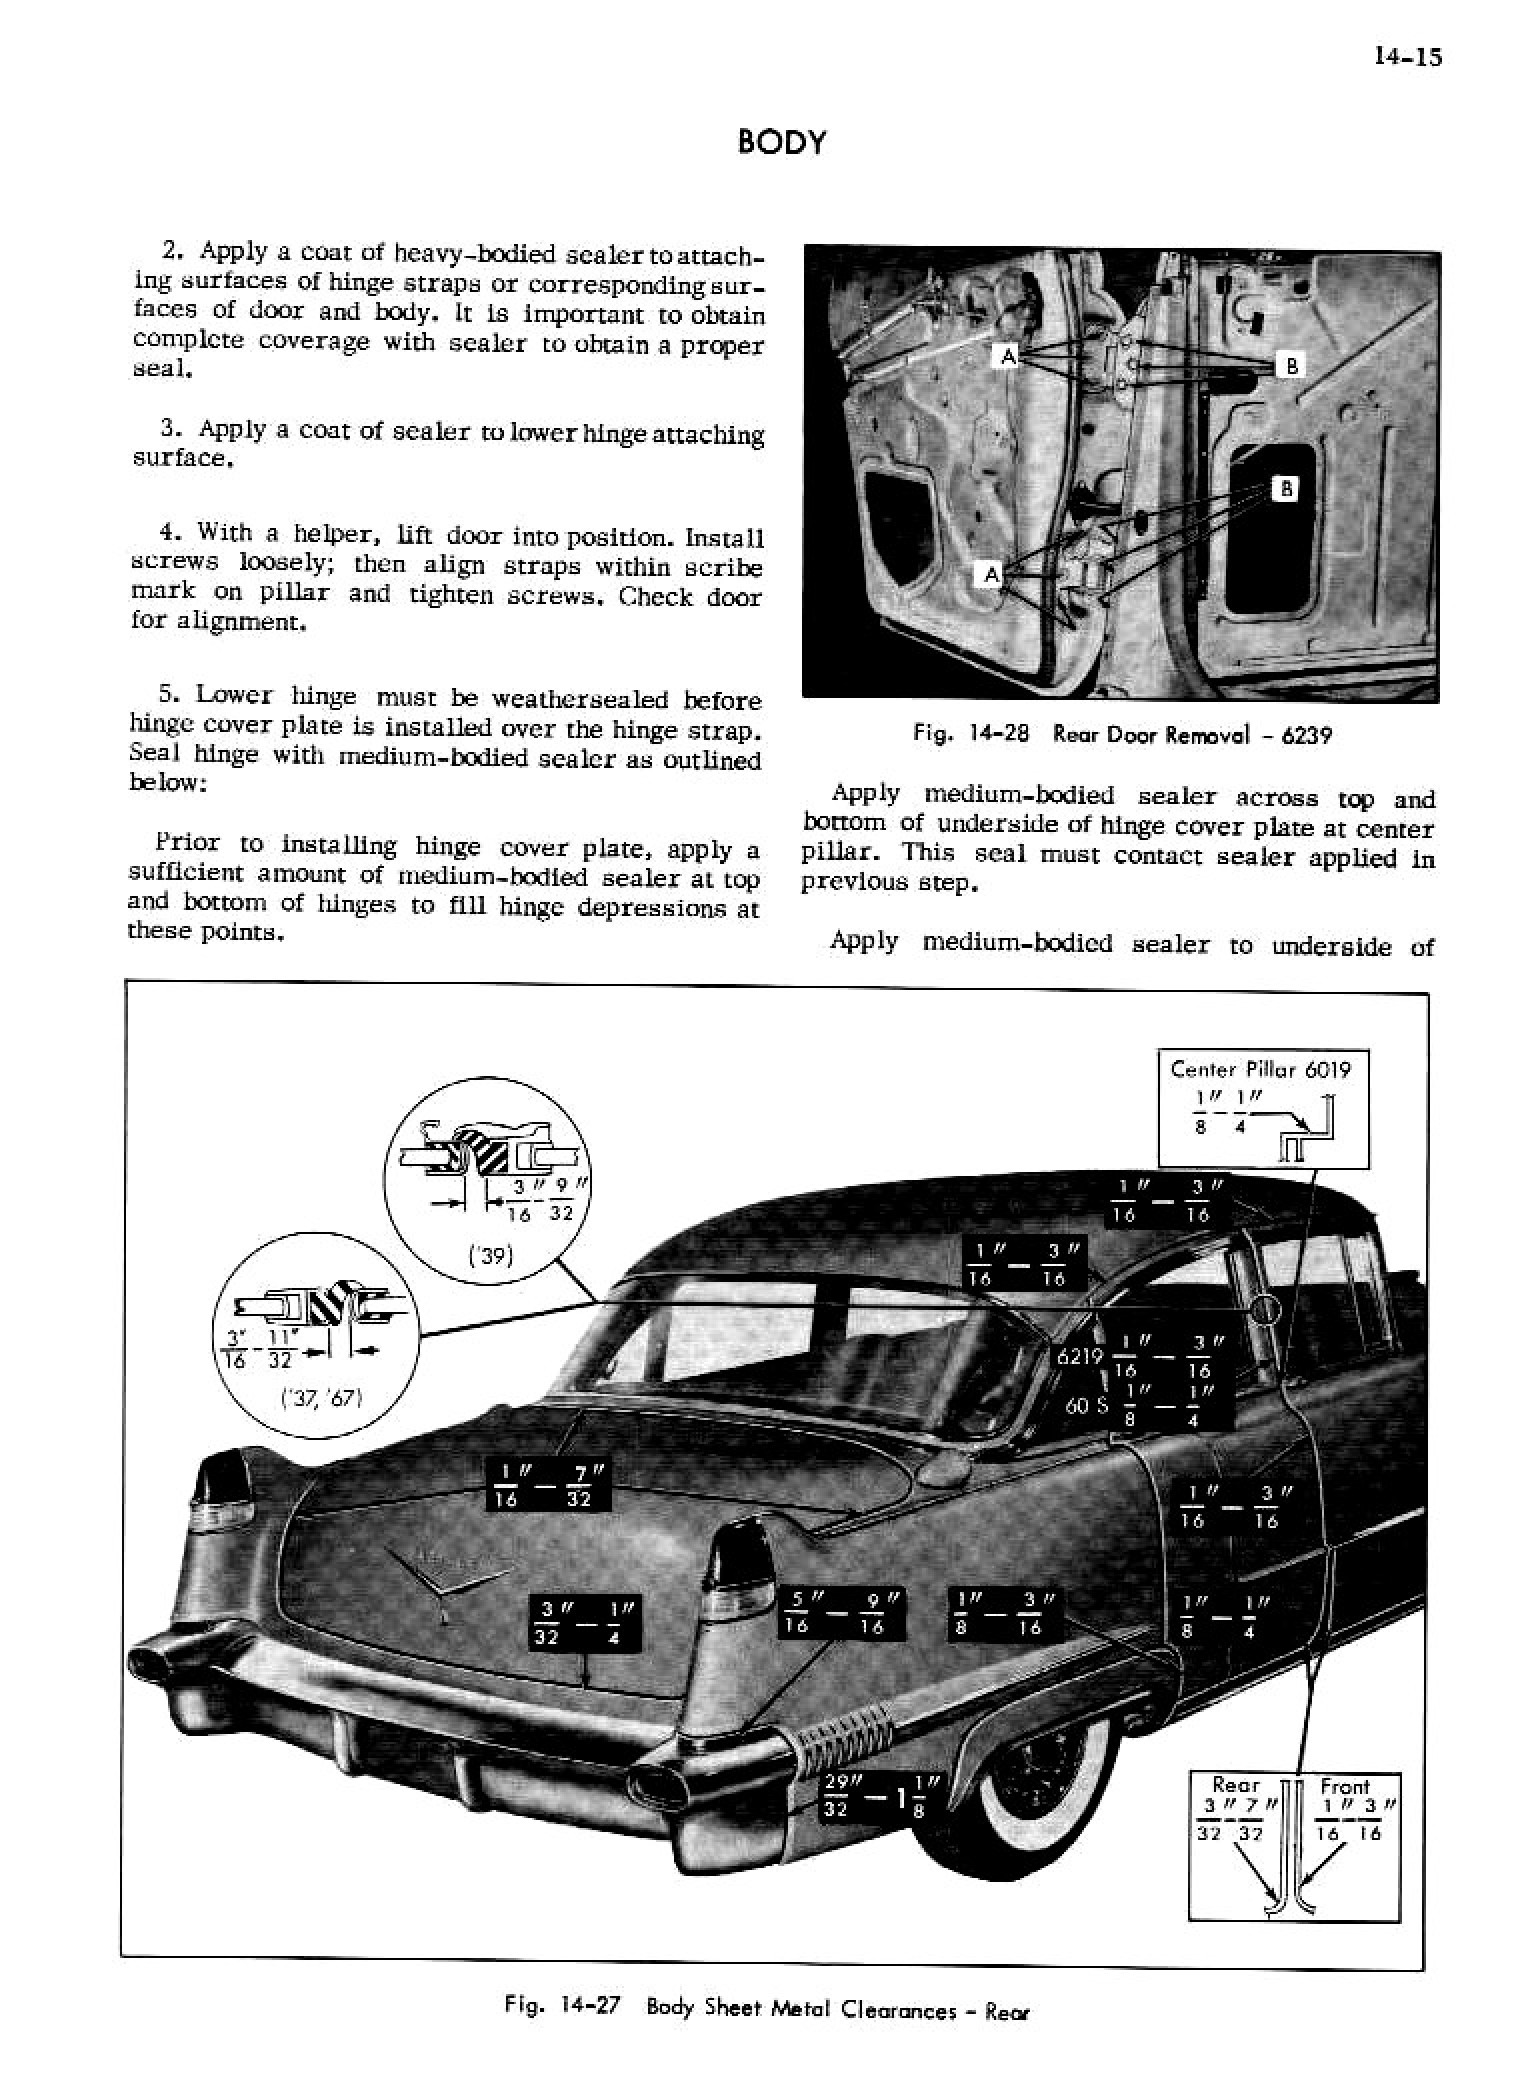 1956 Cadillac Shop Manual- Body Page 15 of 87